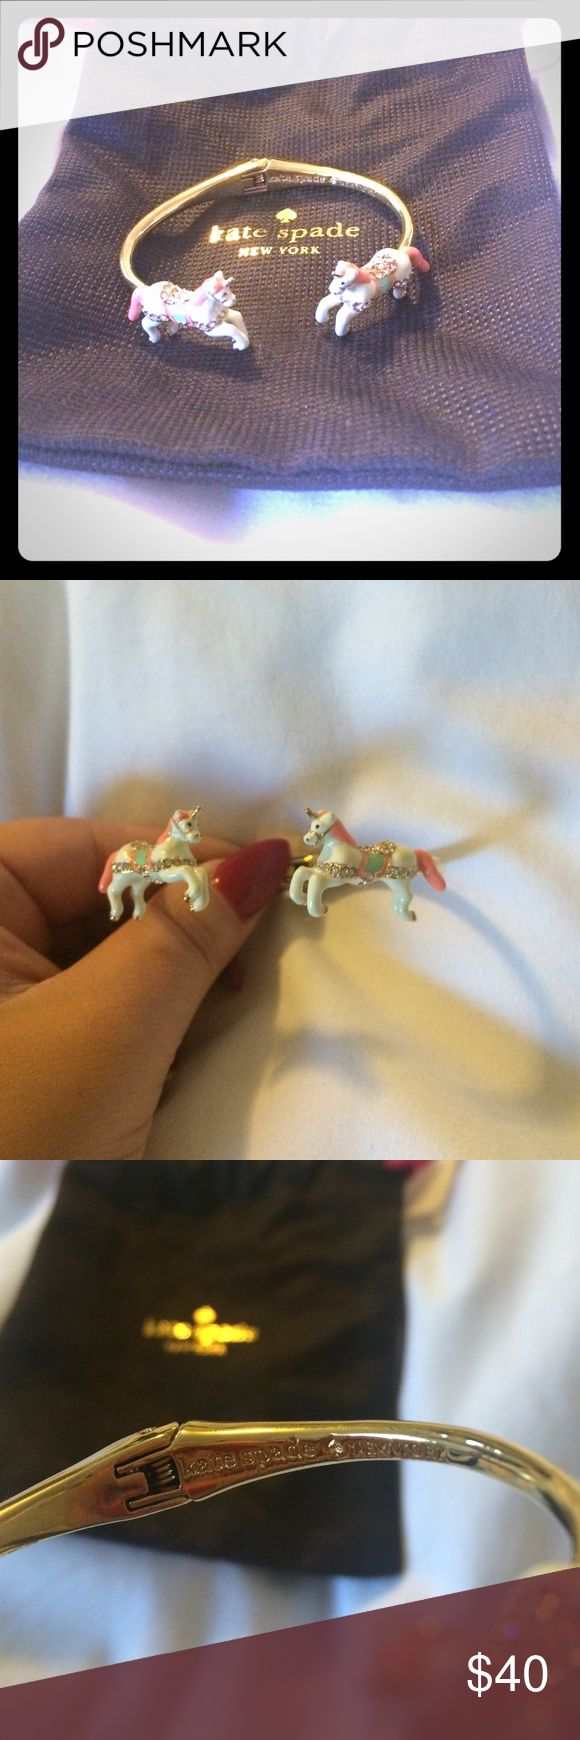 Kate Spade Unicorn Cuff Kate Spade Unicorn Cuff. Worn once, 12-carat gold plated metal with glass stones and enamel fill. Slides on. kate spade Jewelry Bracelets